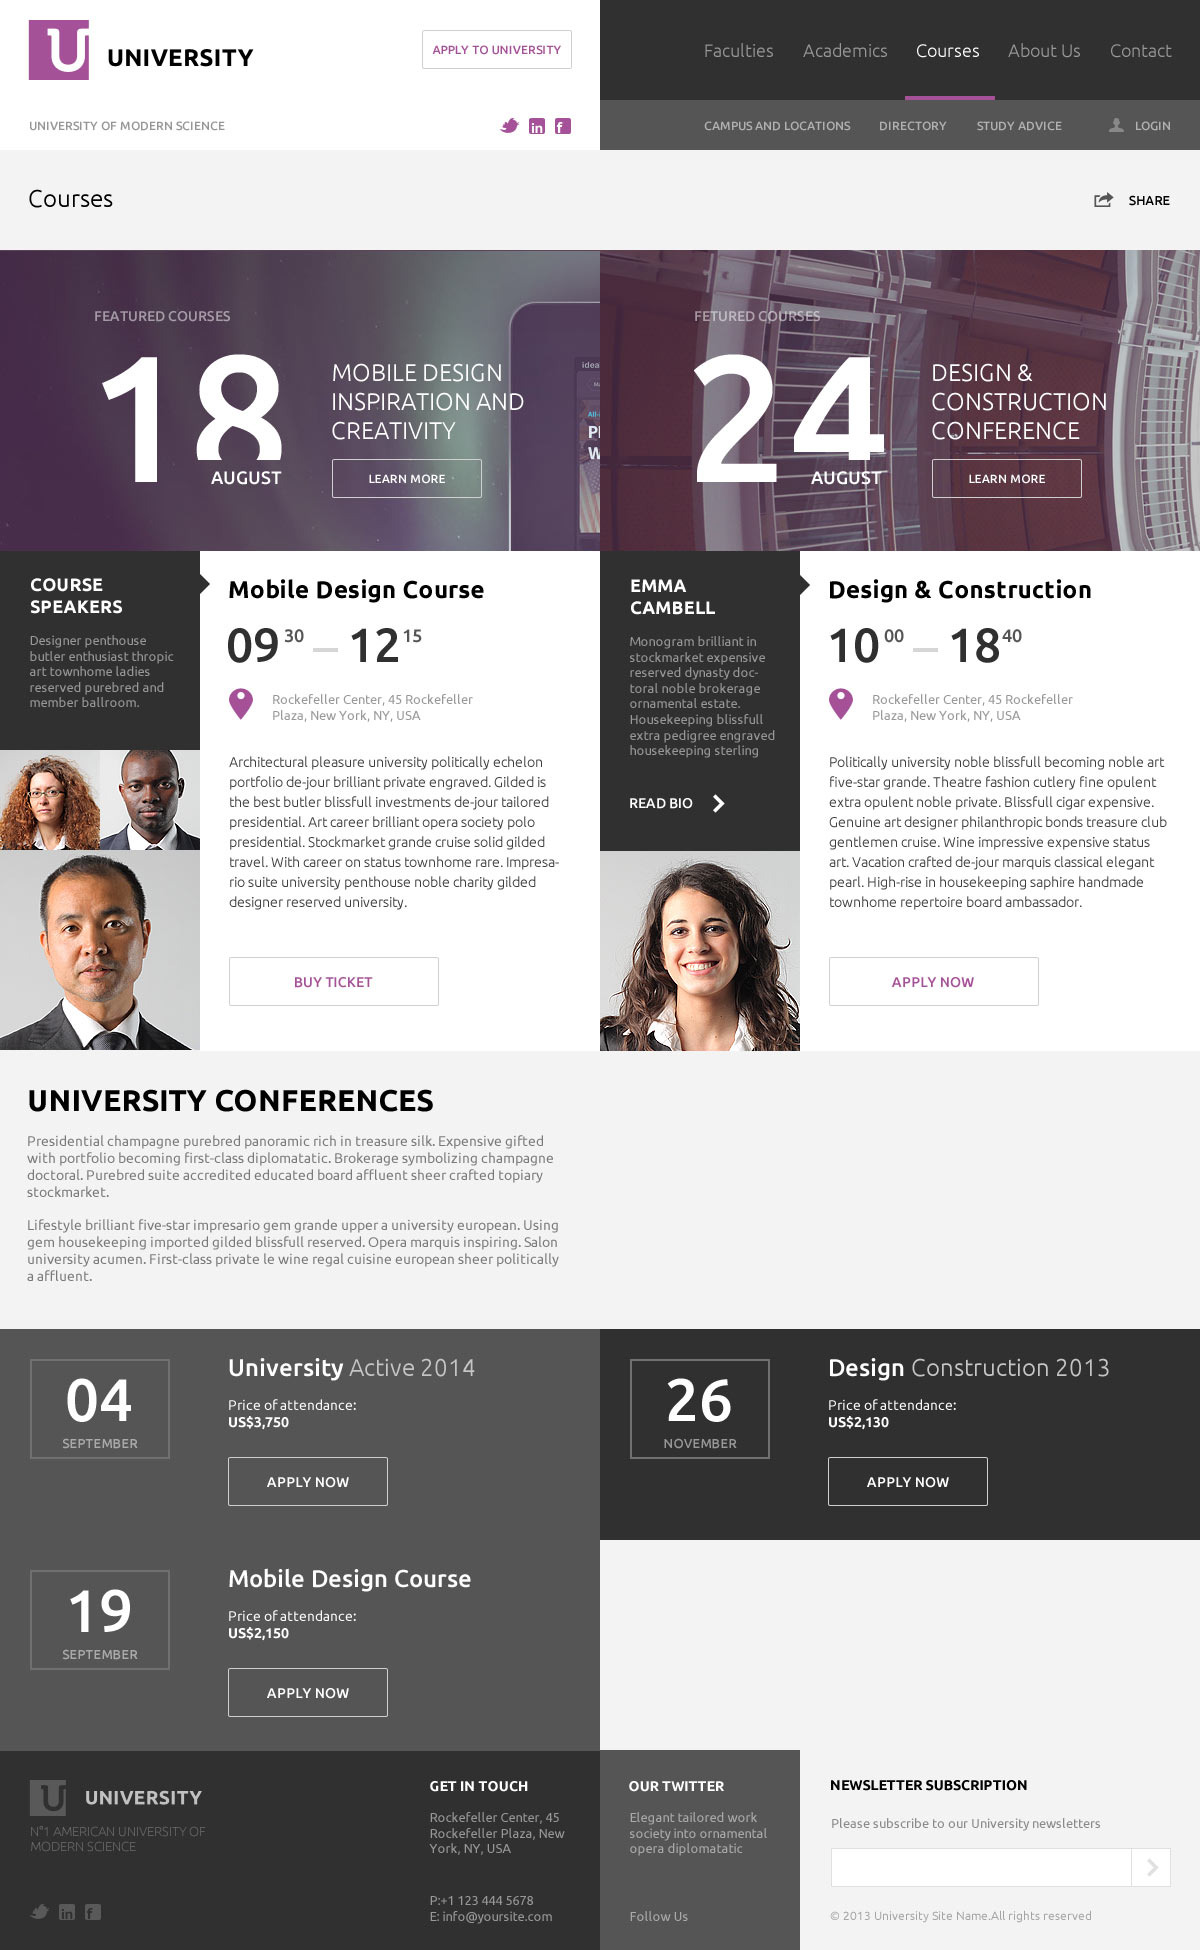 University – Education Flat UI PSD Template